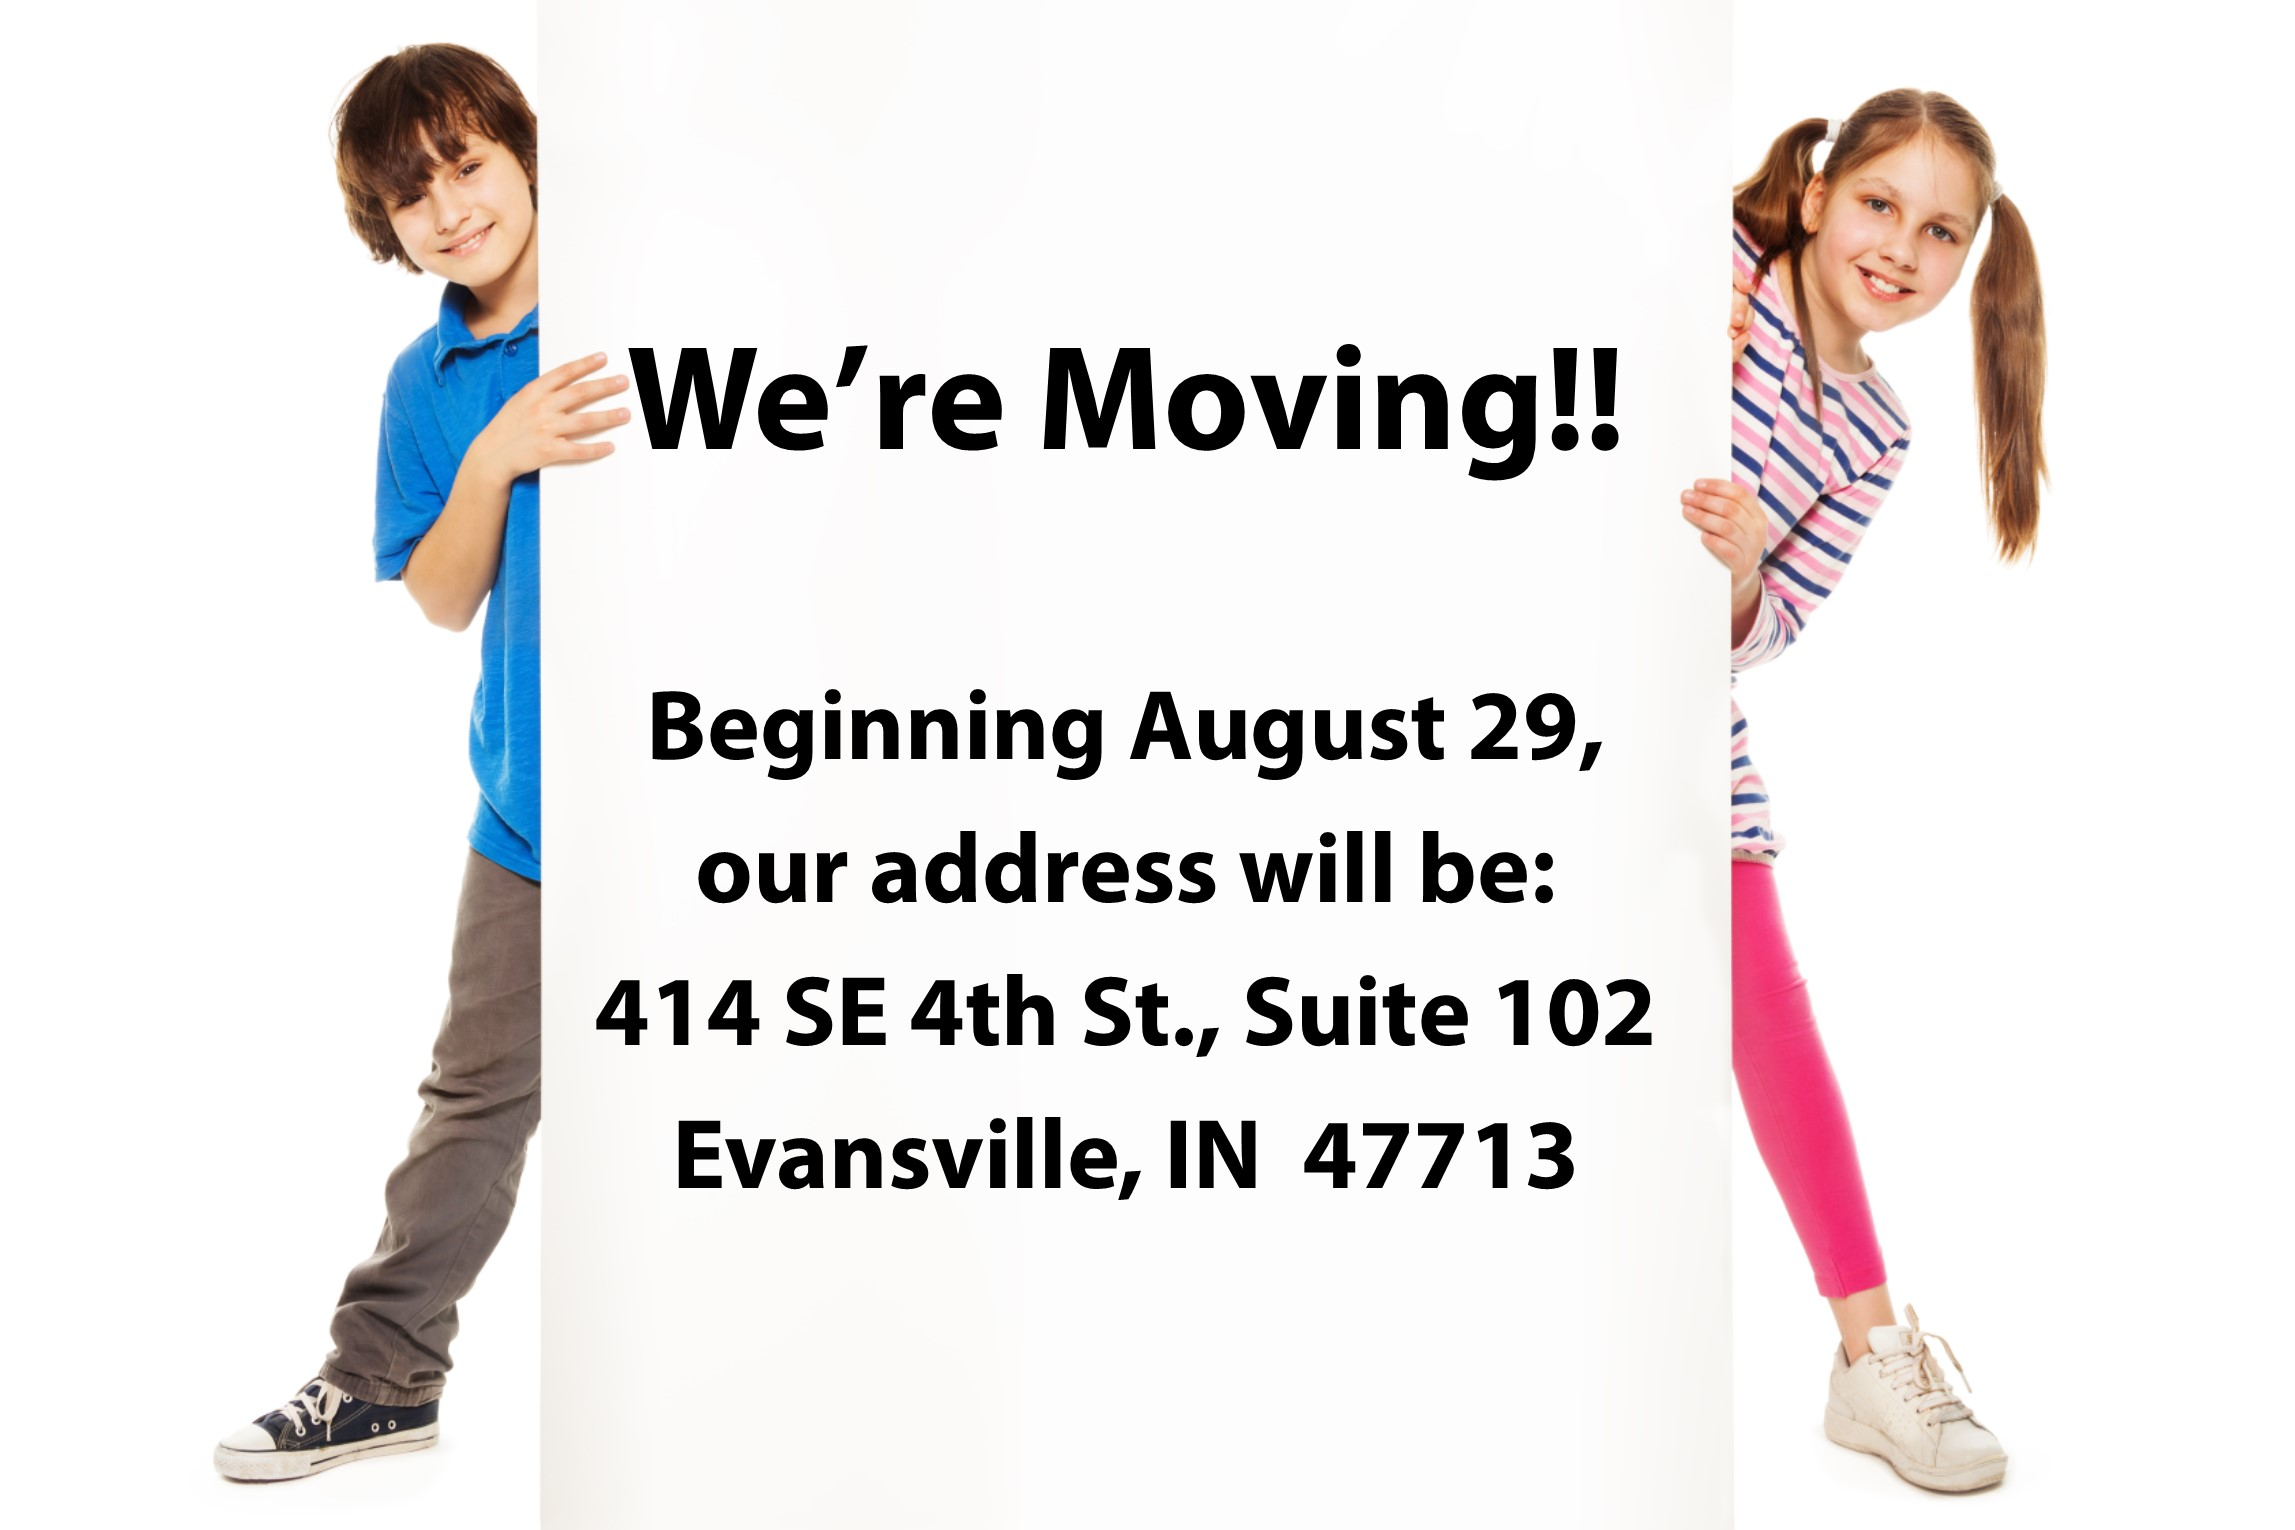 Visit us at our new location on August 29th!